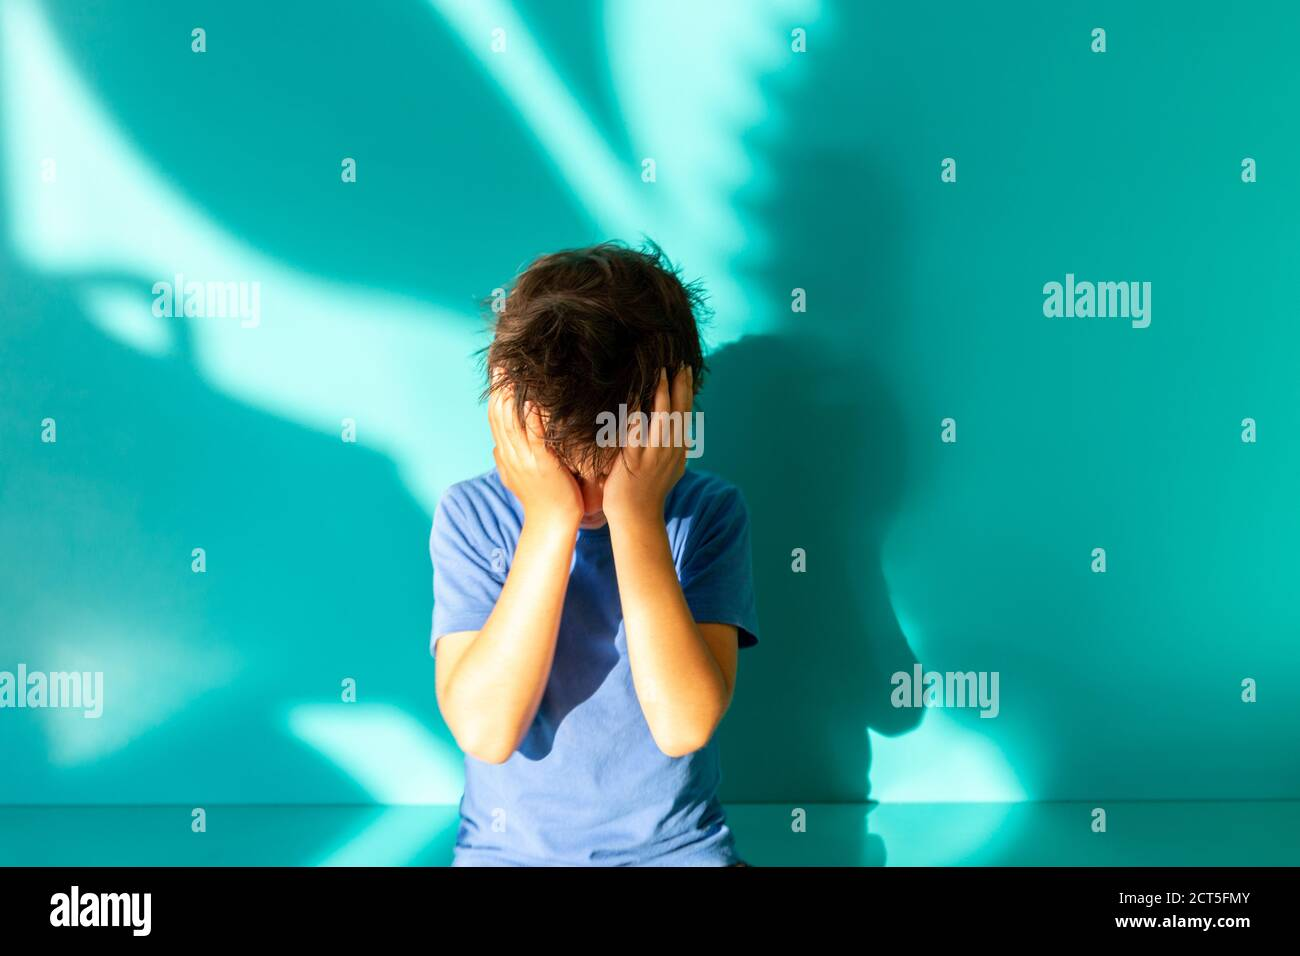 Portrait of a sad or frustrated brunette boy in a blue shirt. thumbs up. turquoise background with shadow. Education. Looking and smiling at the camera Stock Photo